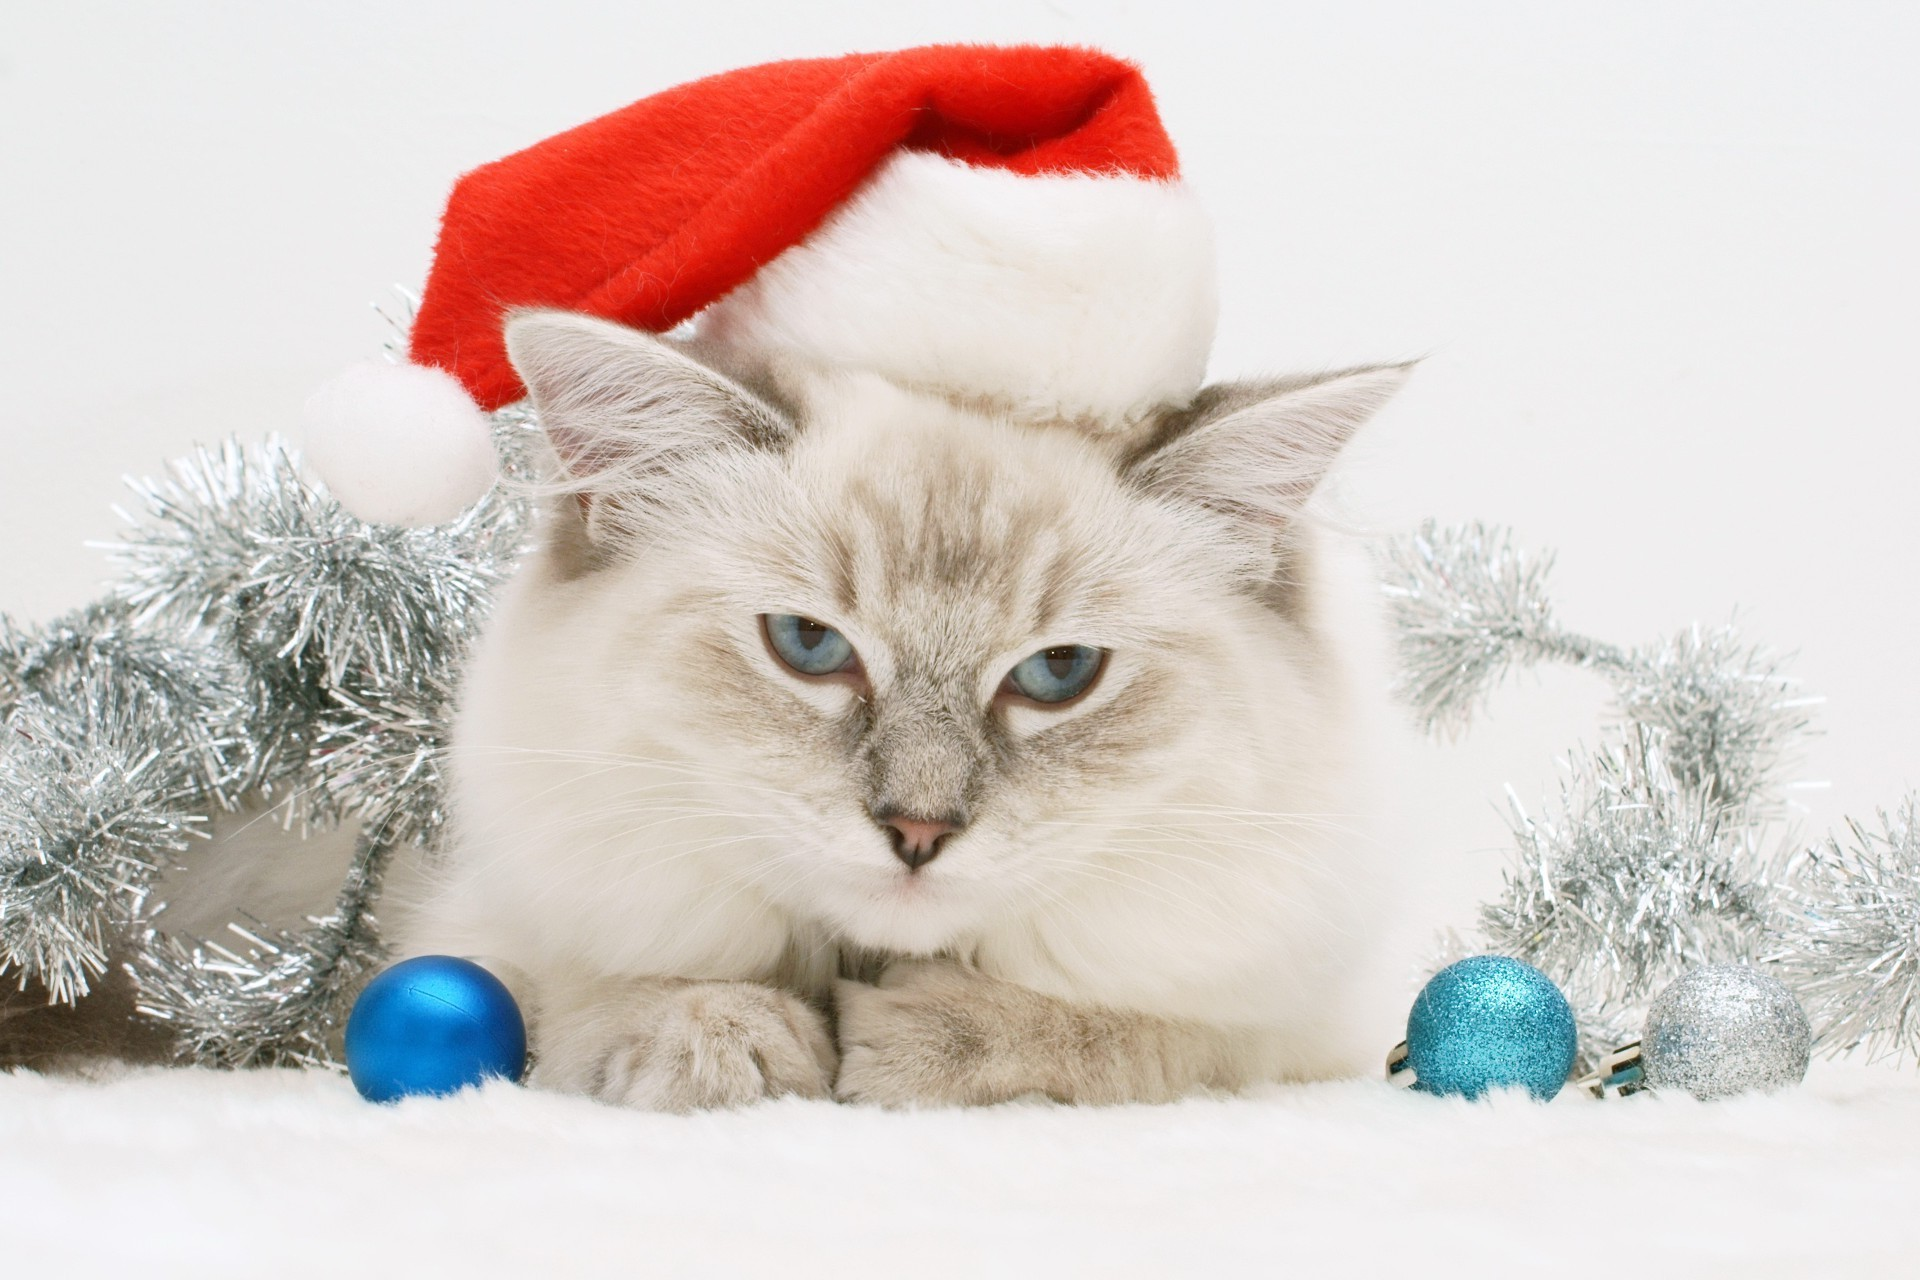 White cat in a Christmas hat